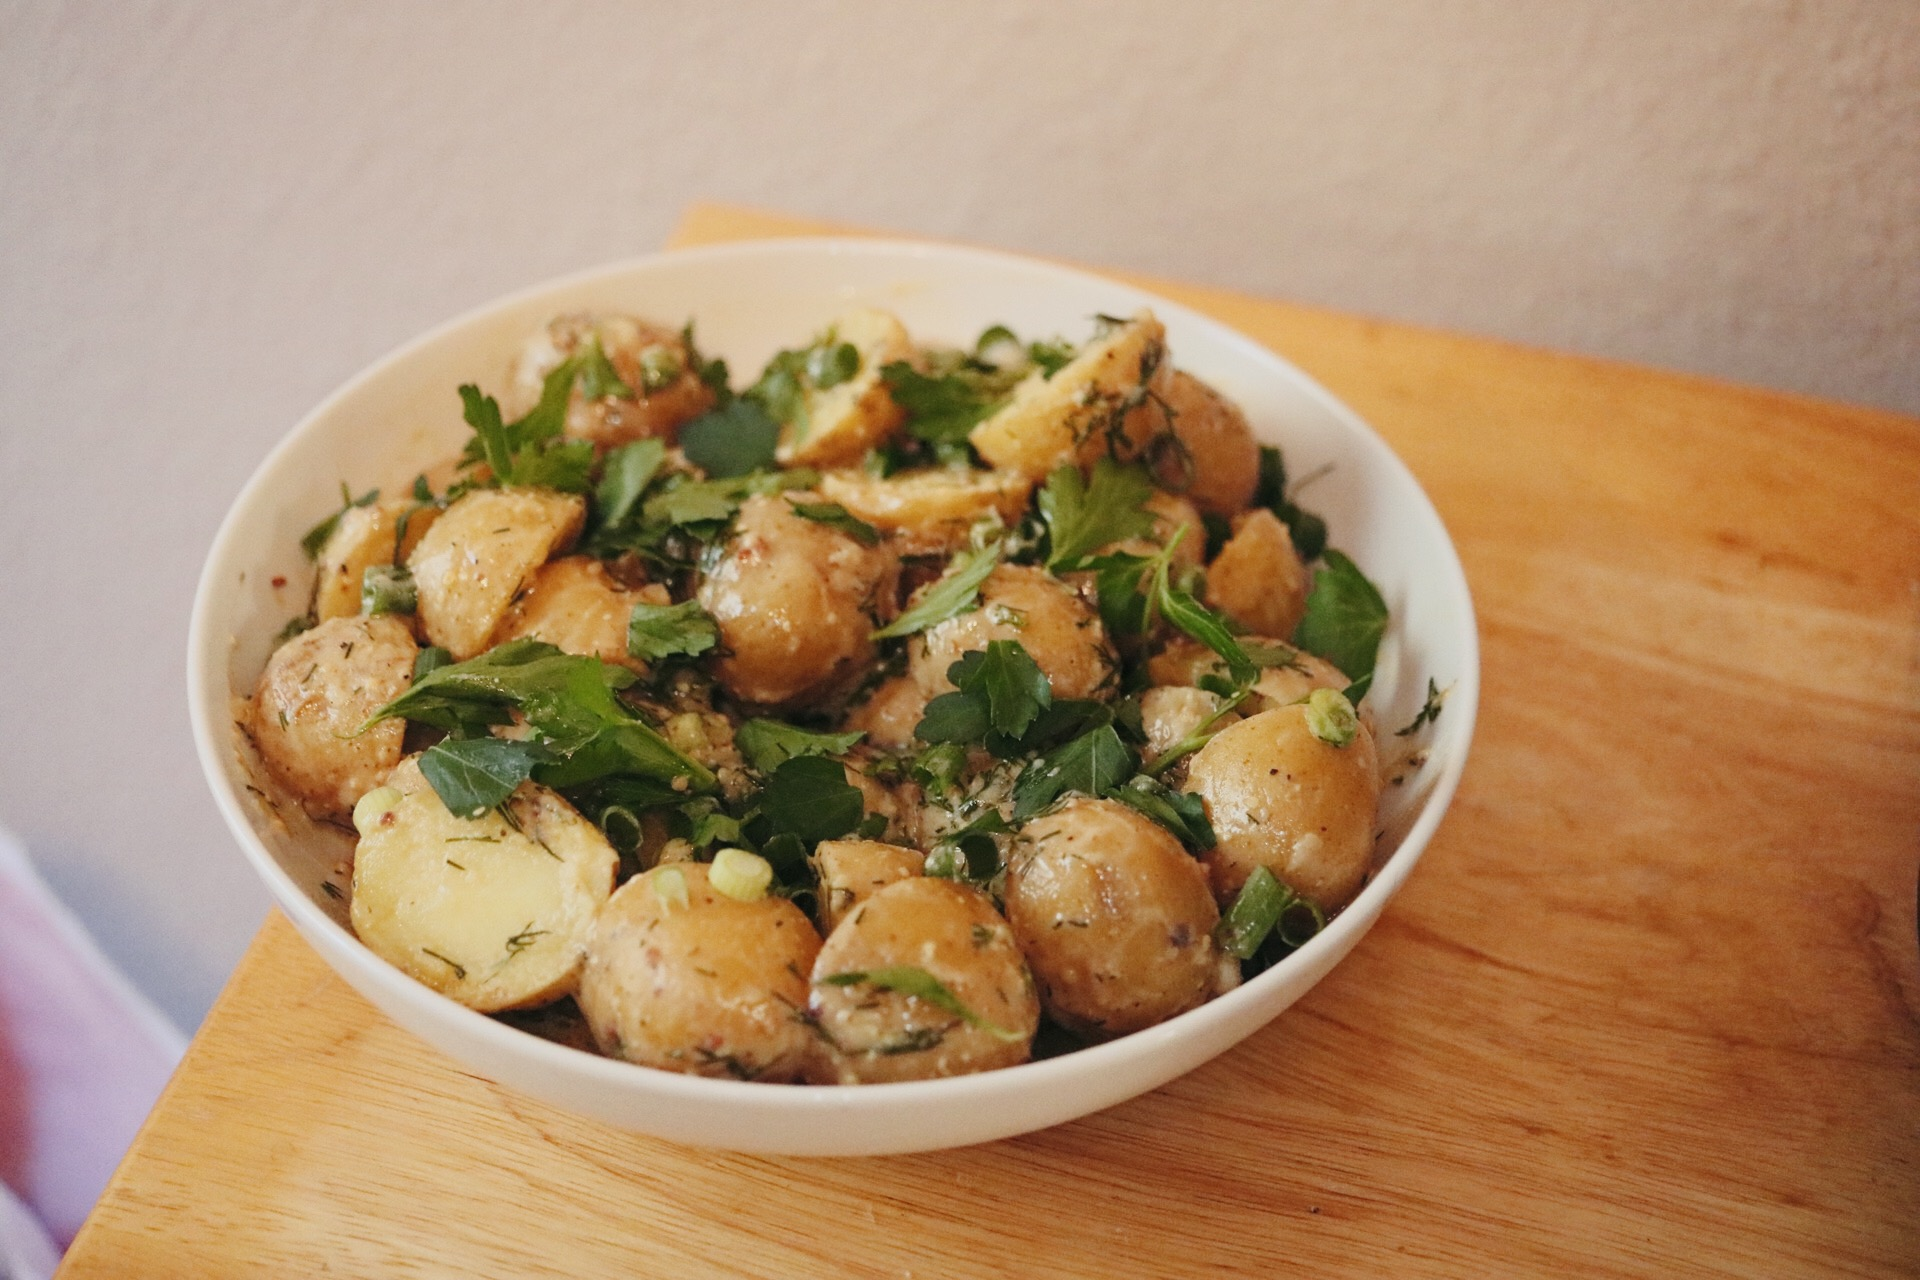 Dijon Mustard and Vinegar Potato Salad